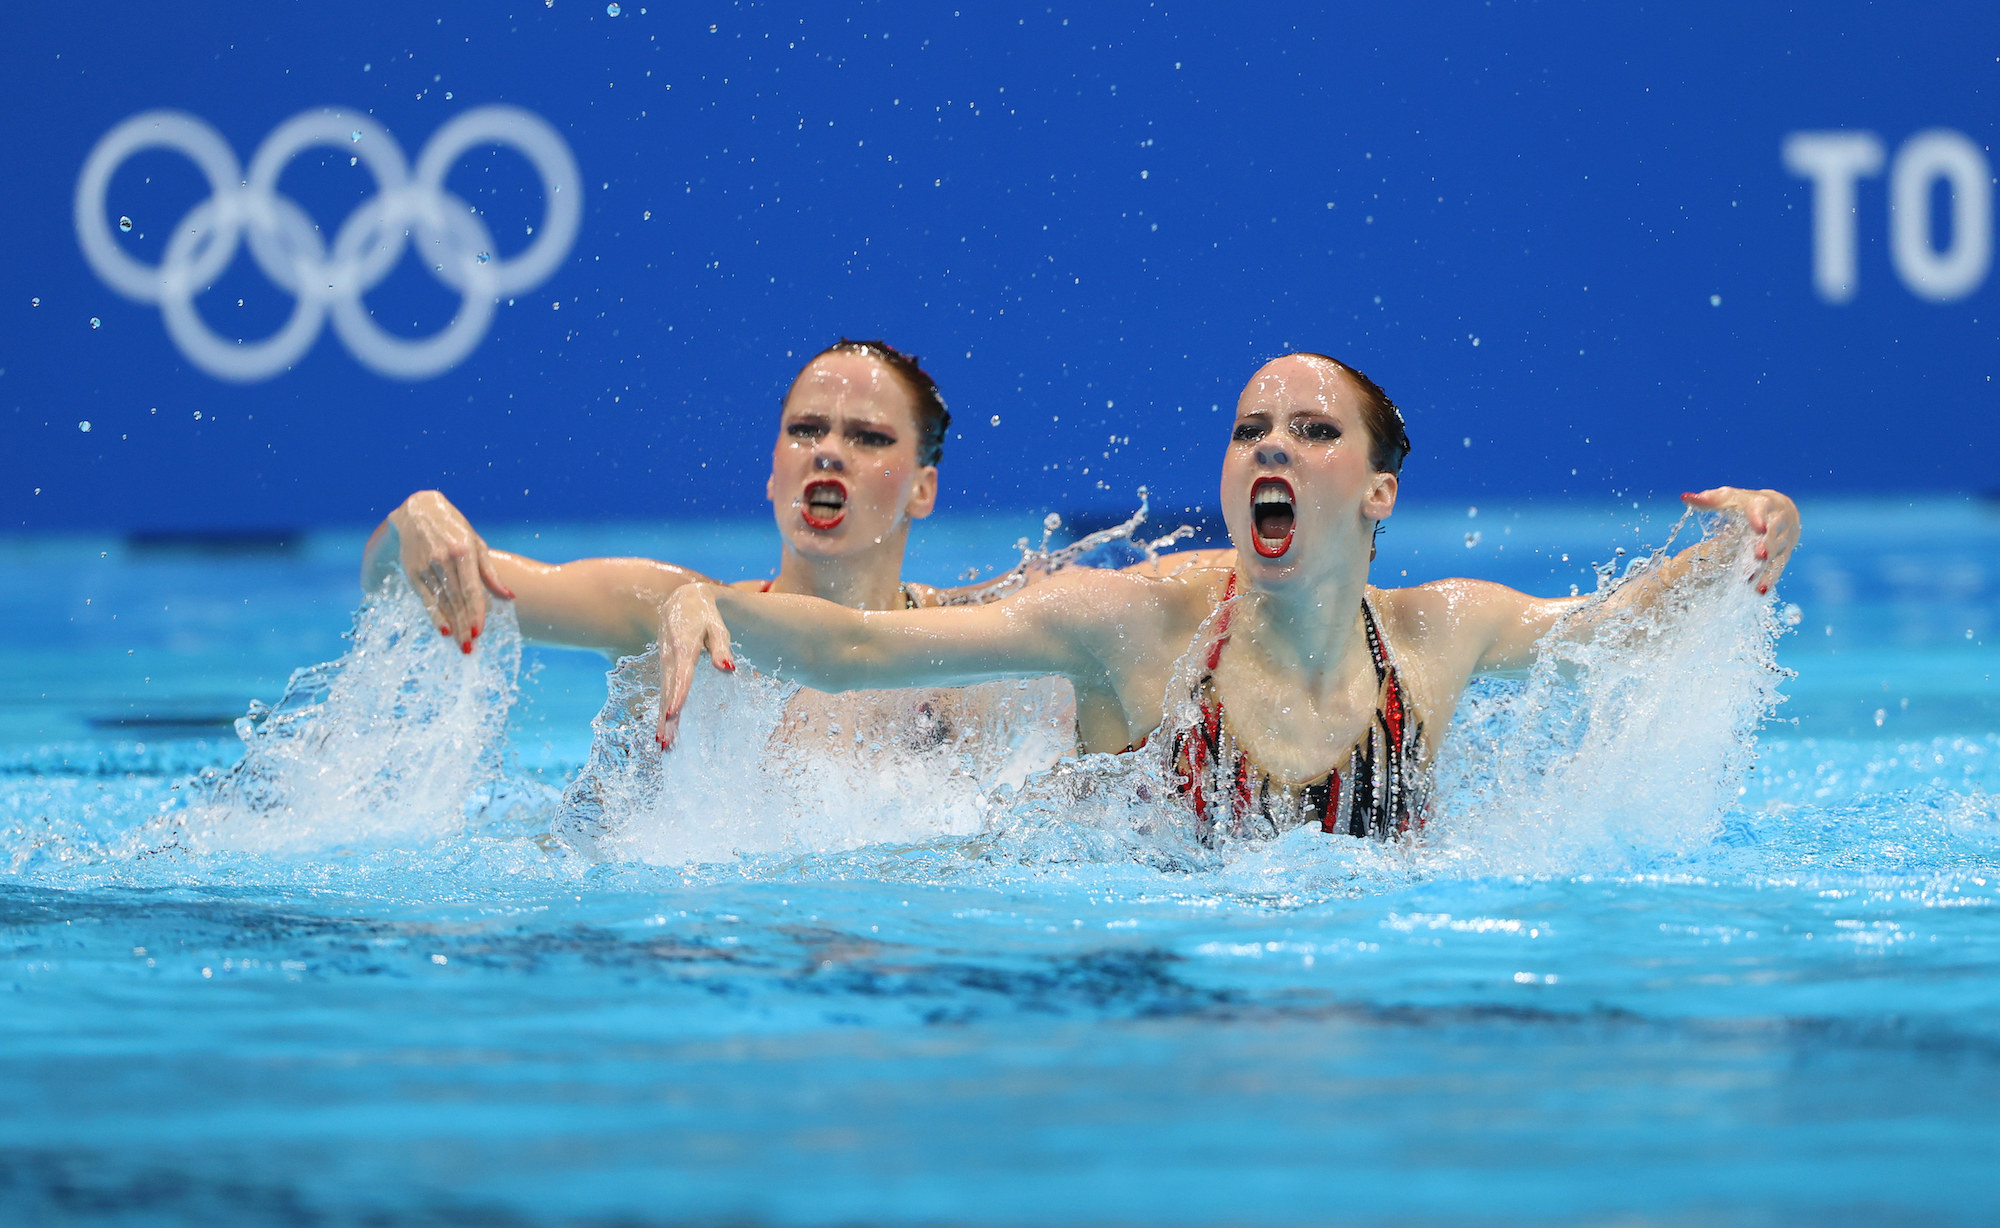 Two women swimmers perform in the pool with their arms to the side